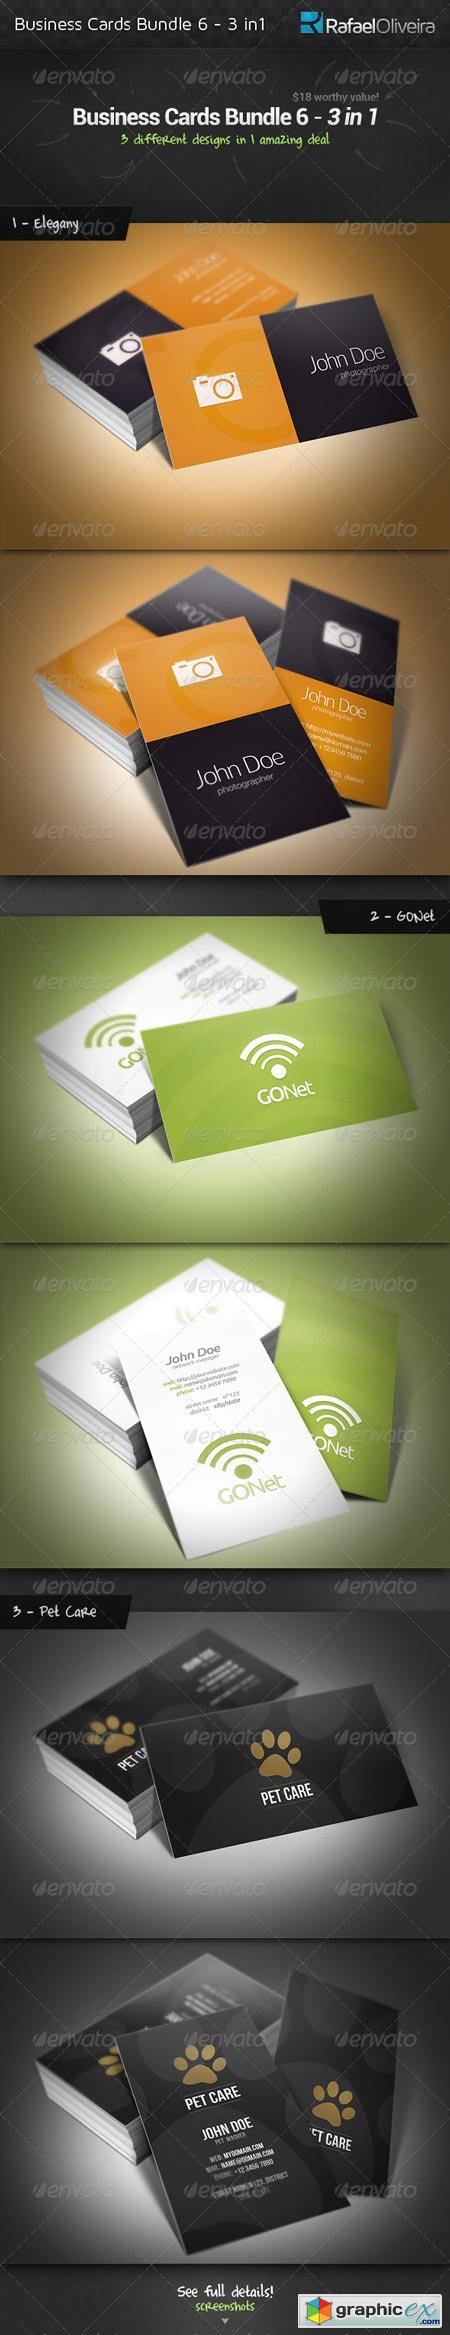 Business Cards Bundle 6 - 3 in 1 3556626